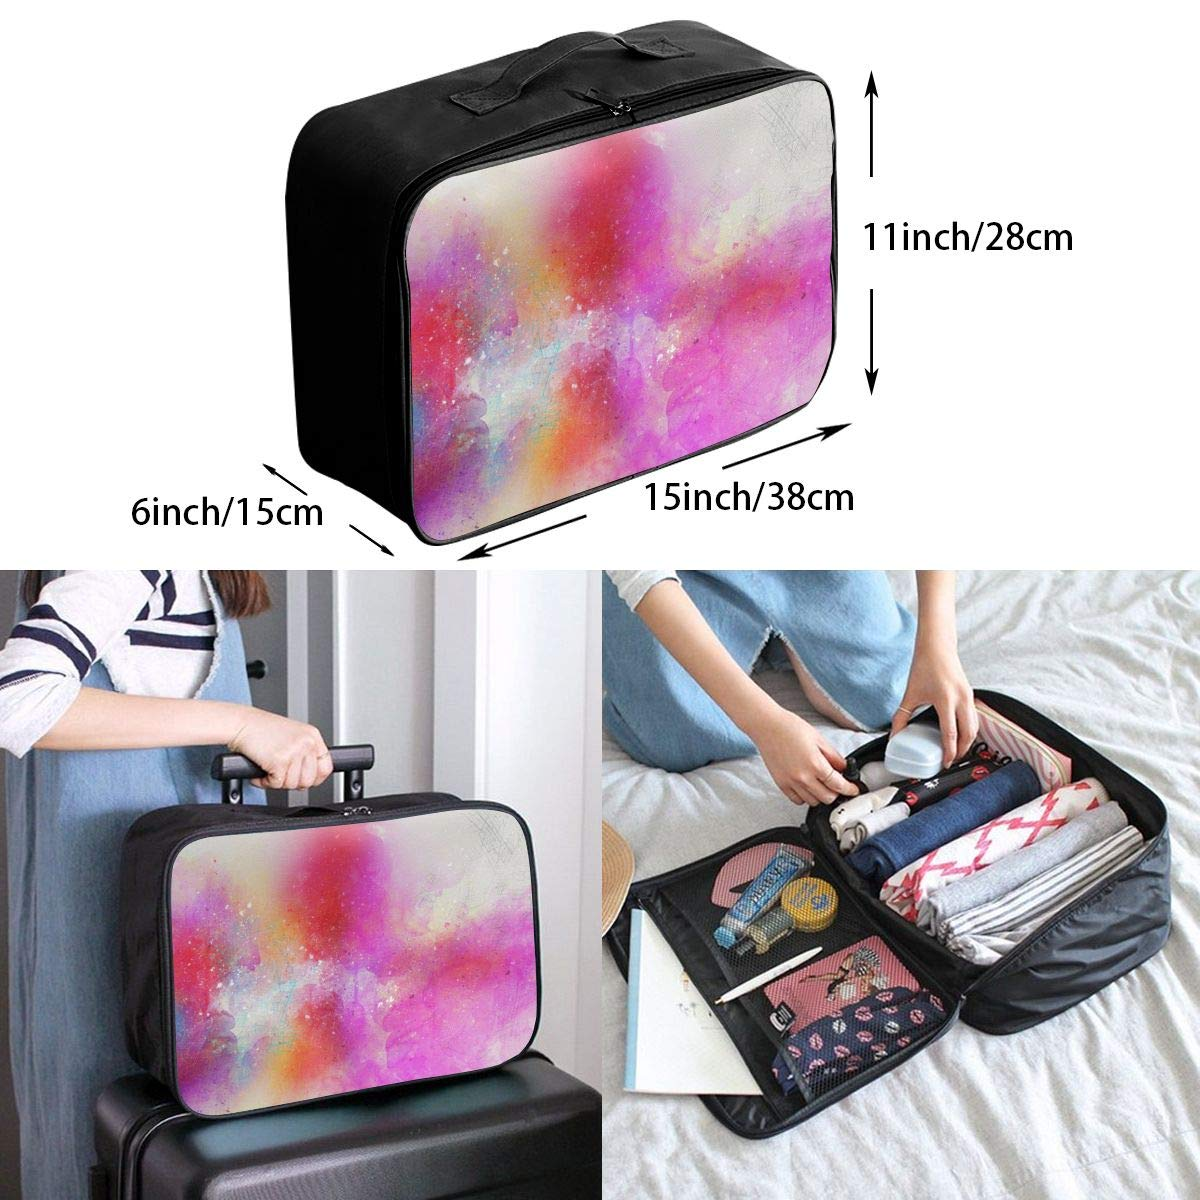 Art Abstract Watercolor Travel Lightweight Waterproof Foldable Storage Carry Luggage Large Capacity Portable Luggage Bag Duffel Bag